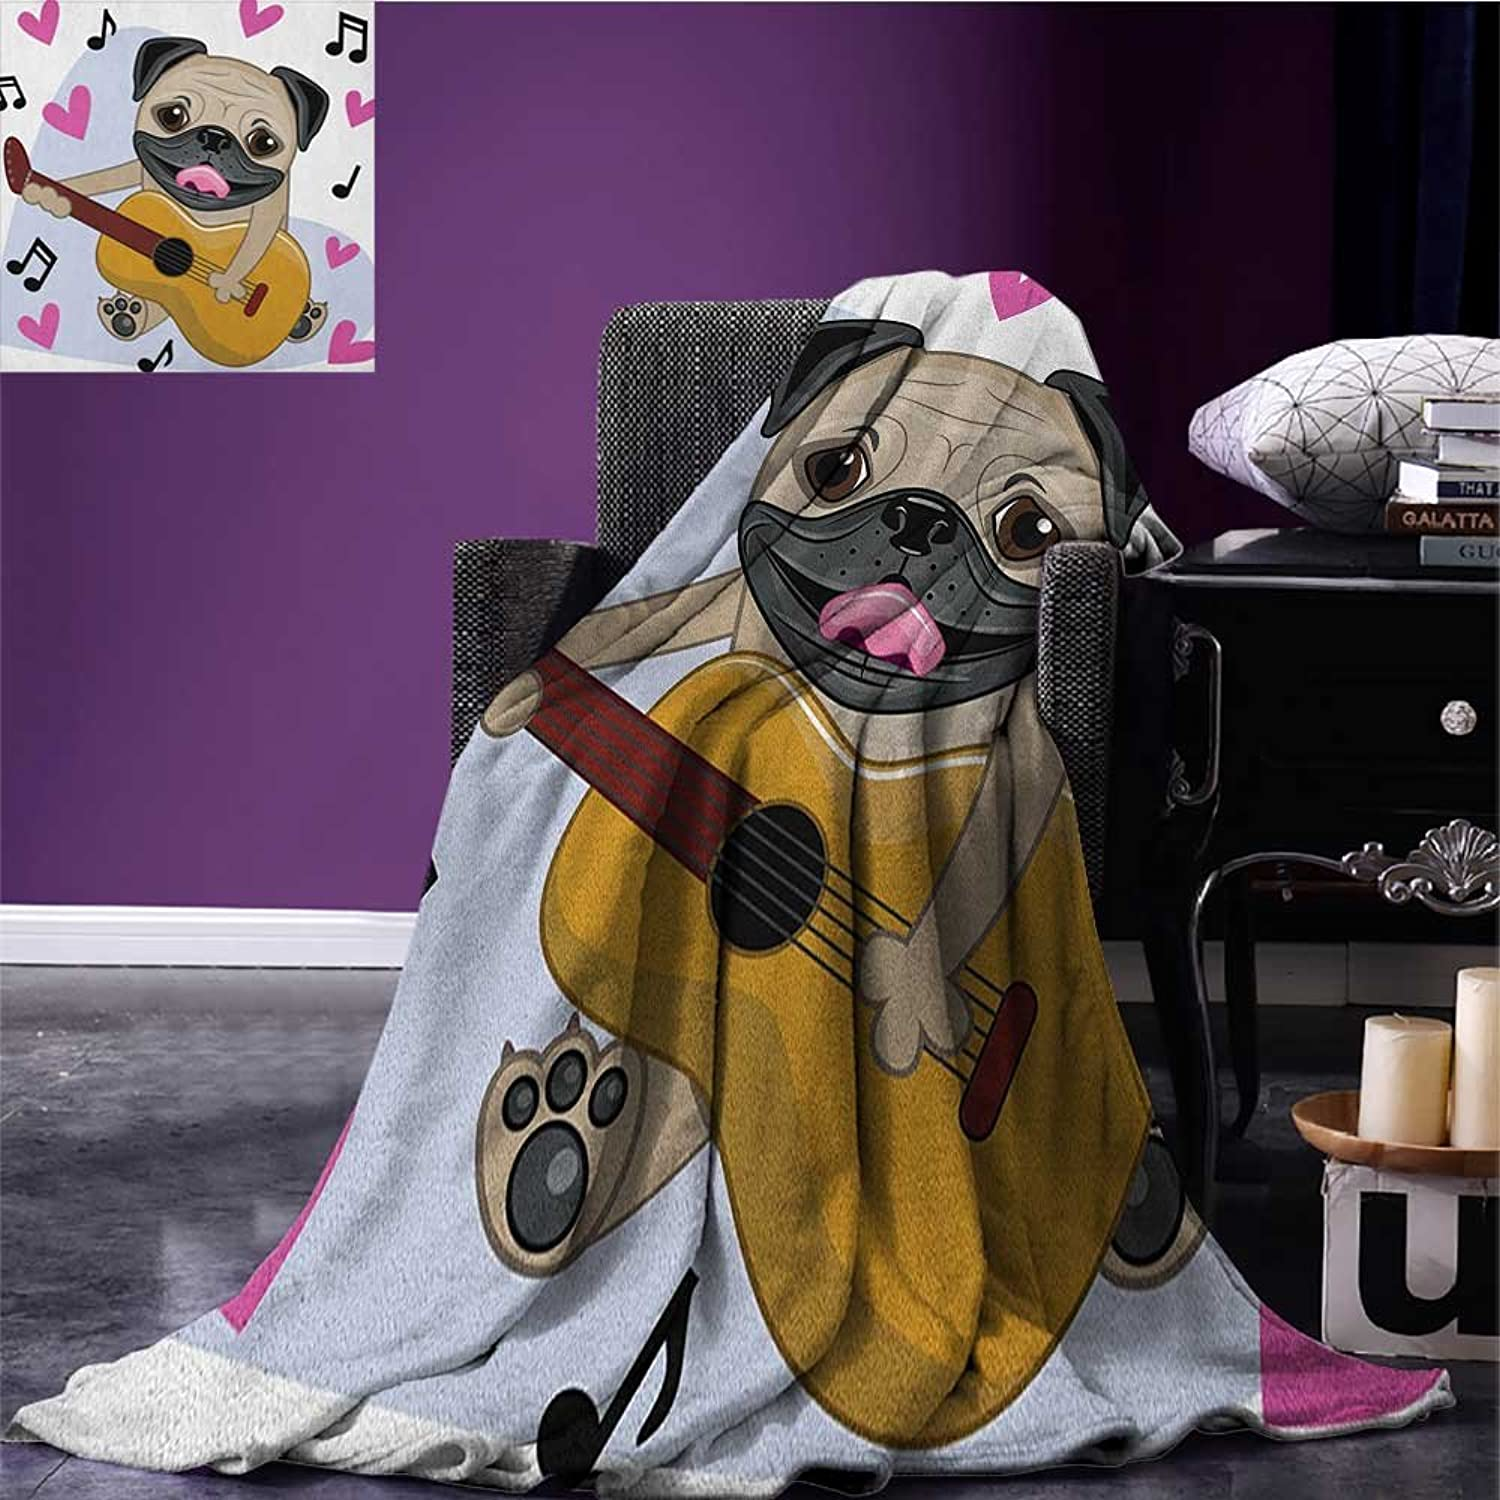 Pug Picnic Blanket Pug Dog Playing Guitar Singing with Cute Pink Hearts Funny Animal Cartoon Soft Throw Blanket Pale Brown Pink Black Size 59 x35.5